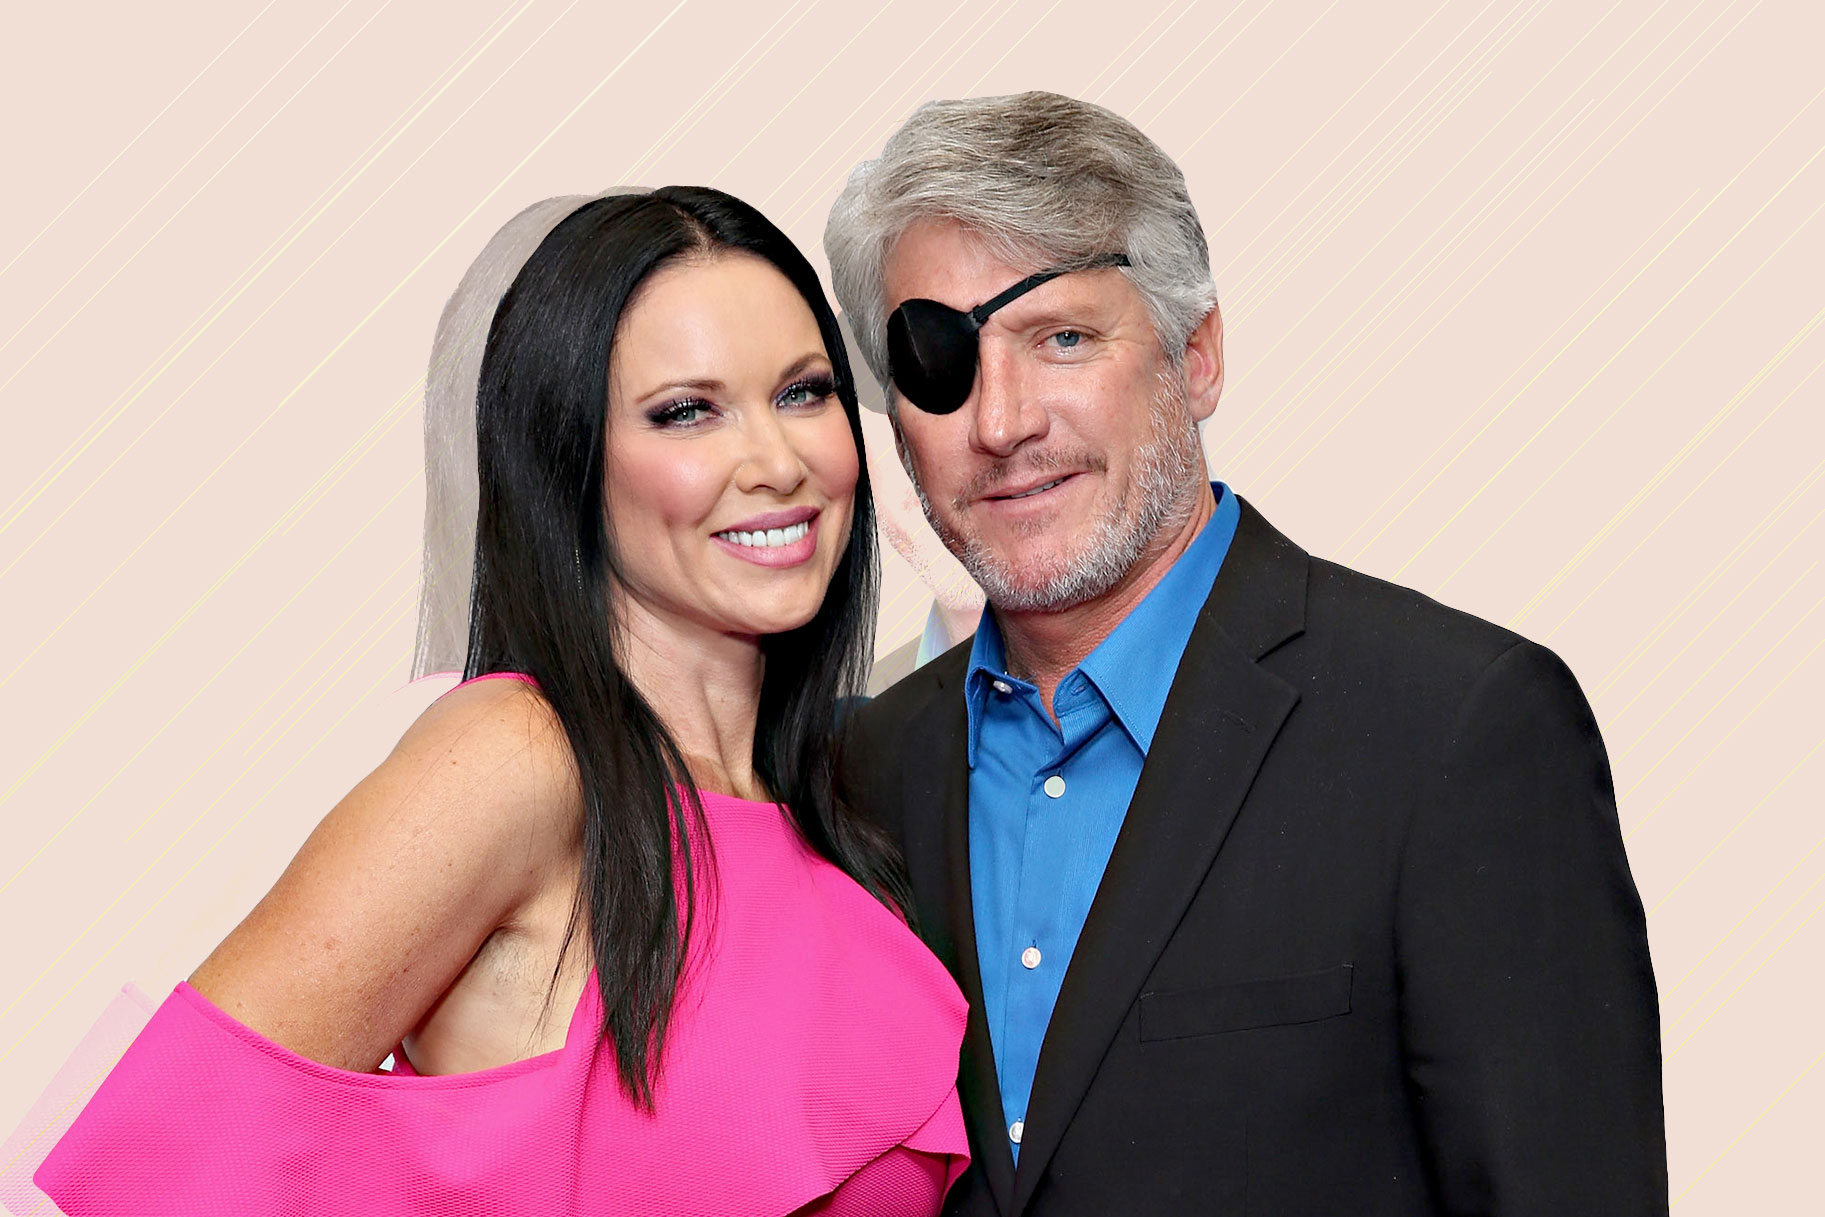 LeeAnne Locken, Rich Emberlin